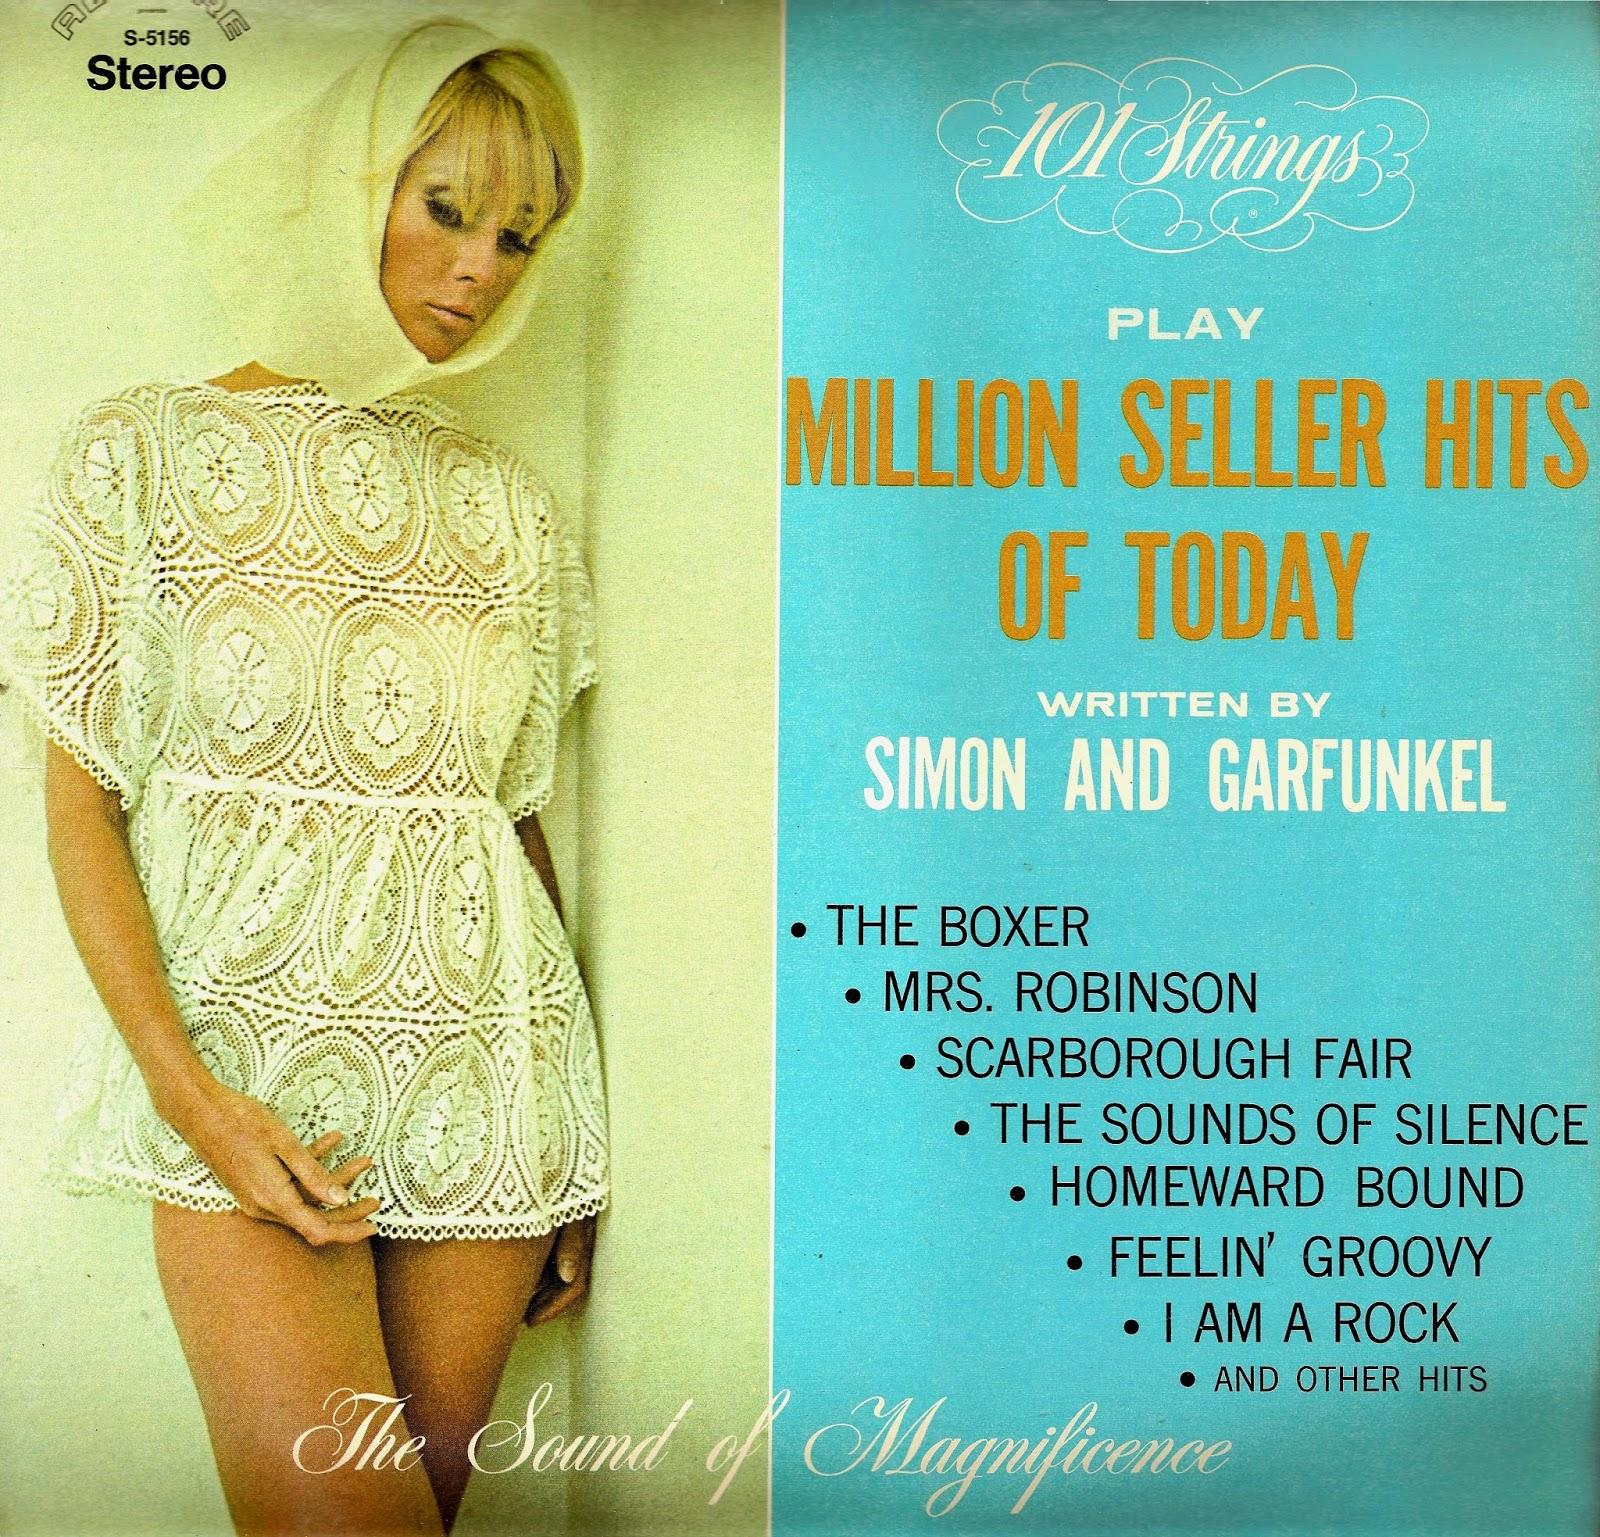 ORCHESTRA 101 STRINGS - Play Million Seller Hits of Today.jpg